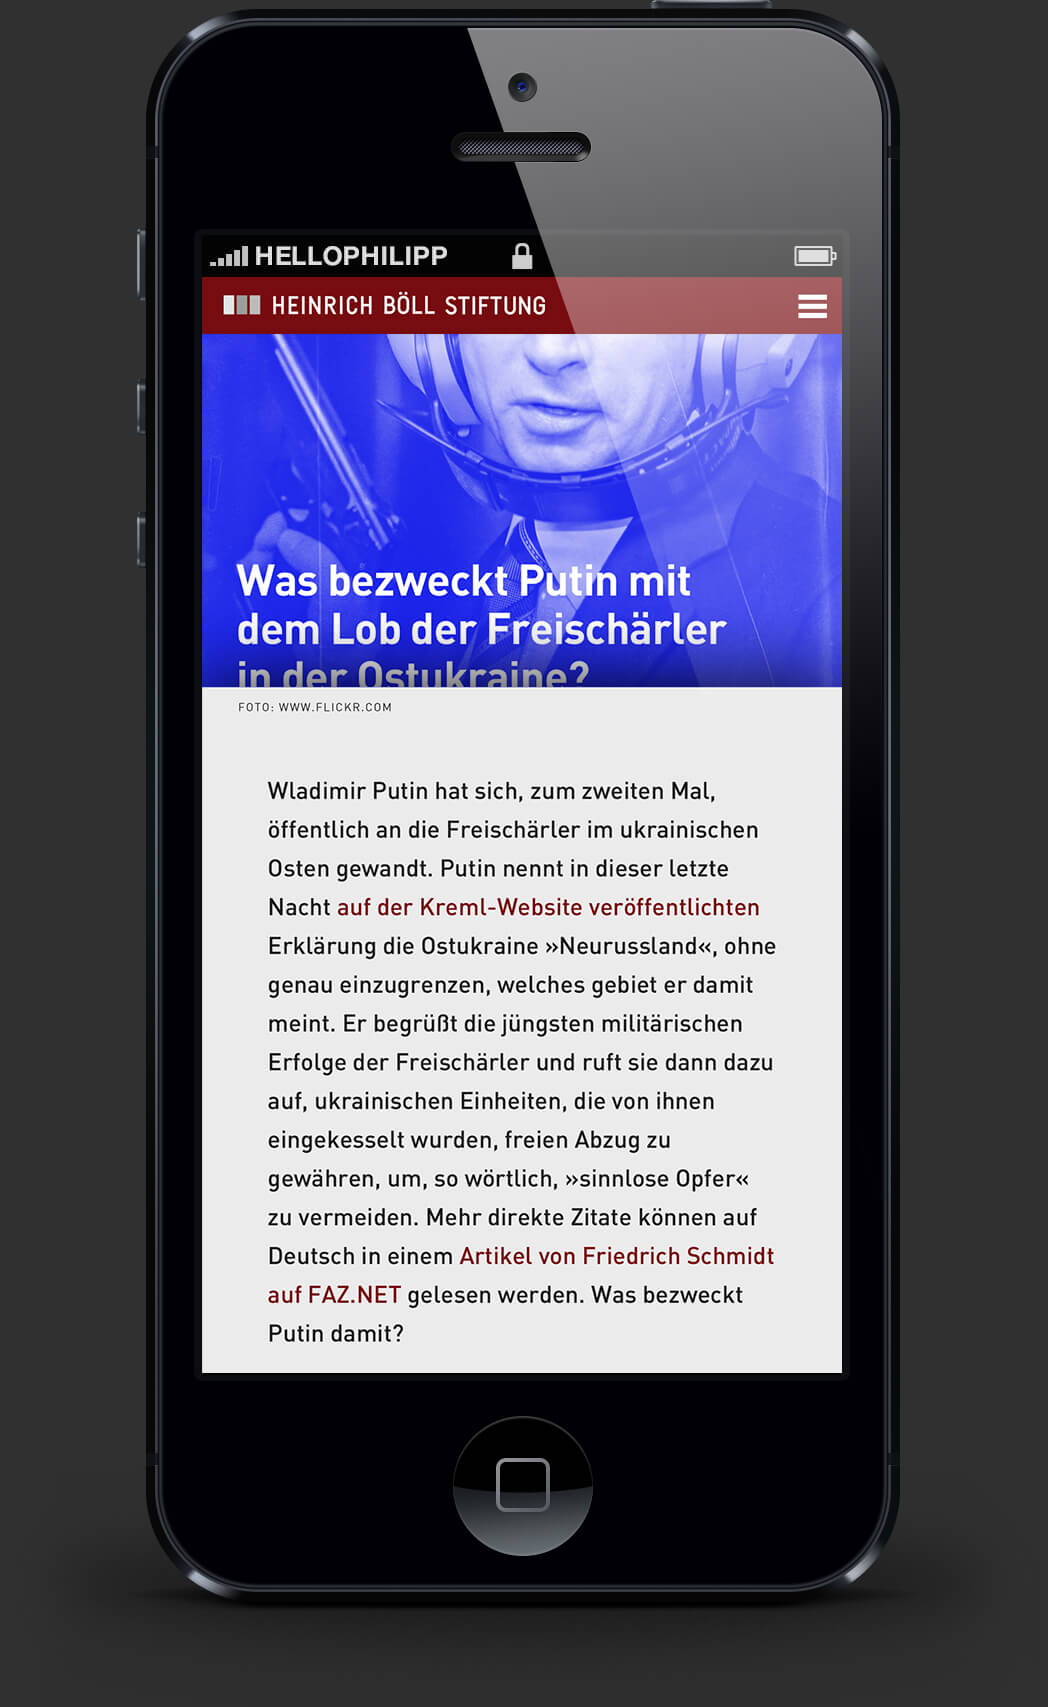 boell_article_mobile_2